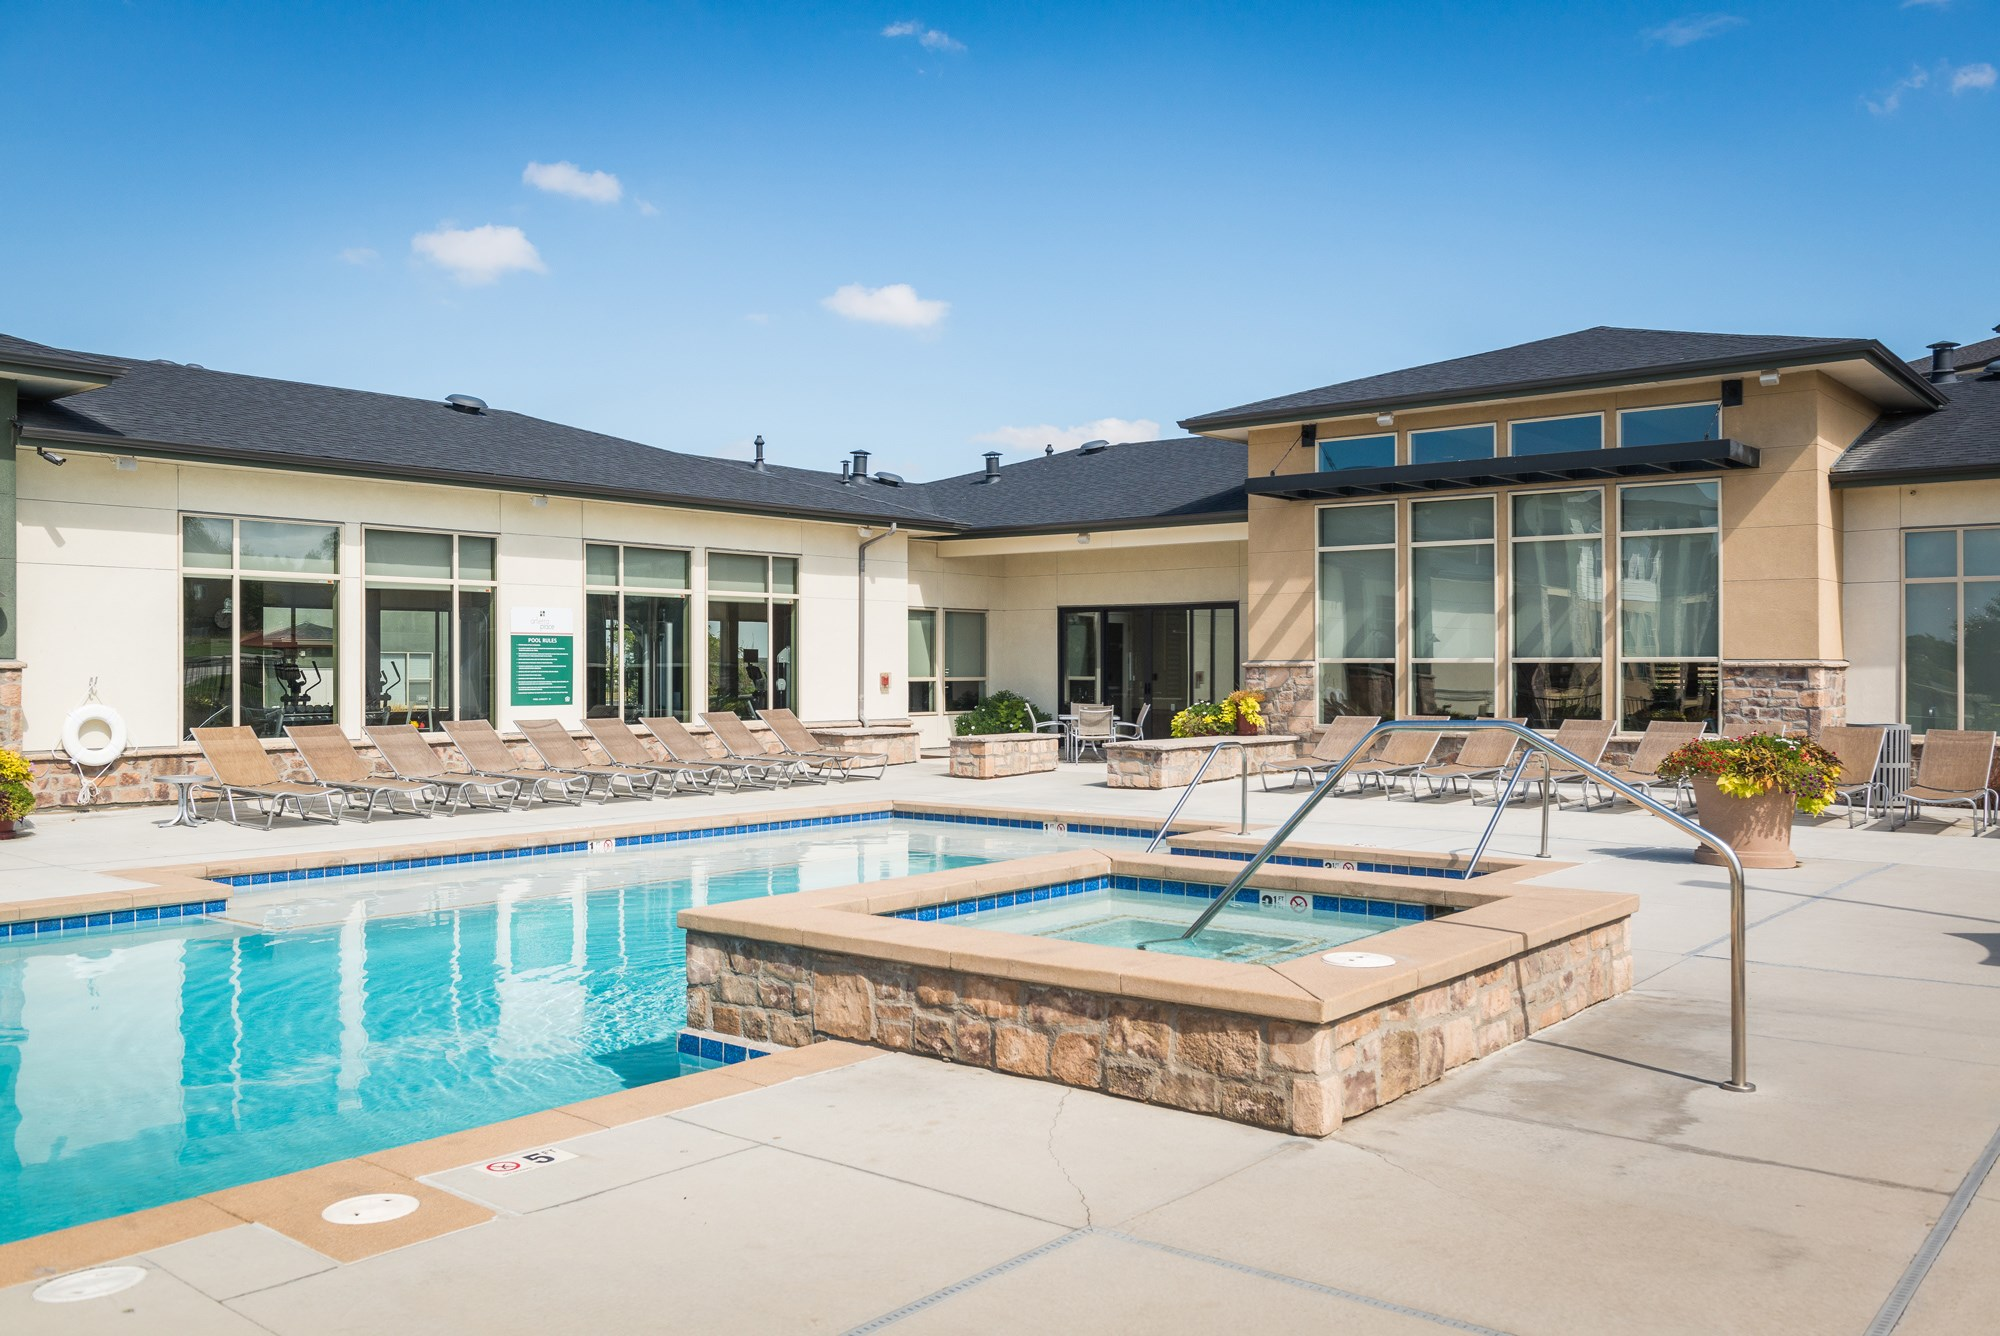 Swimming Pool and Spa at Arterra Place Apartments in Aurora, CO